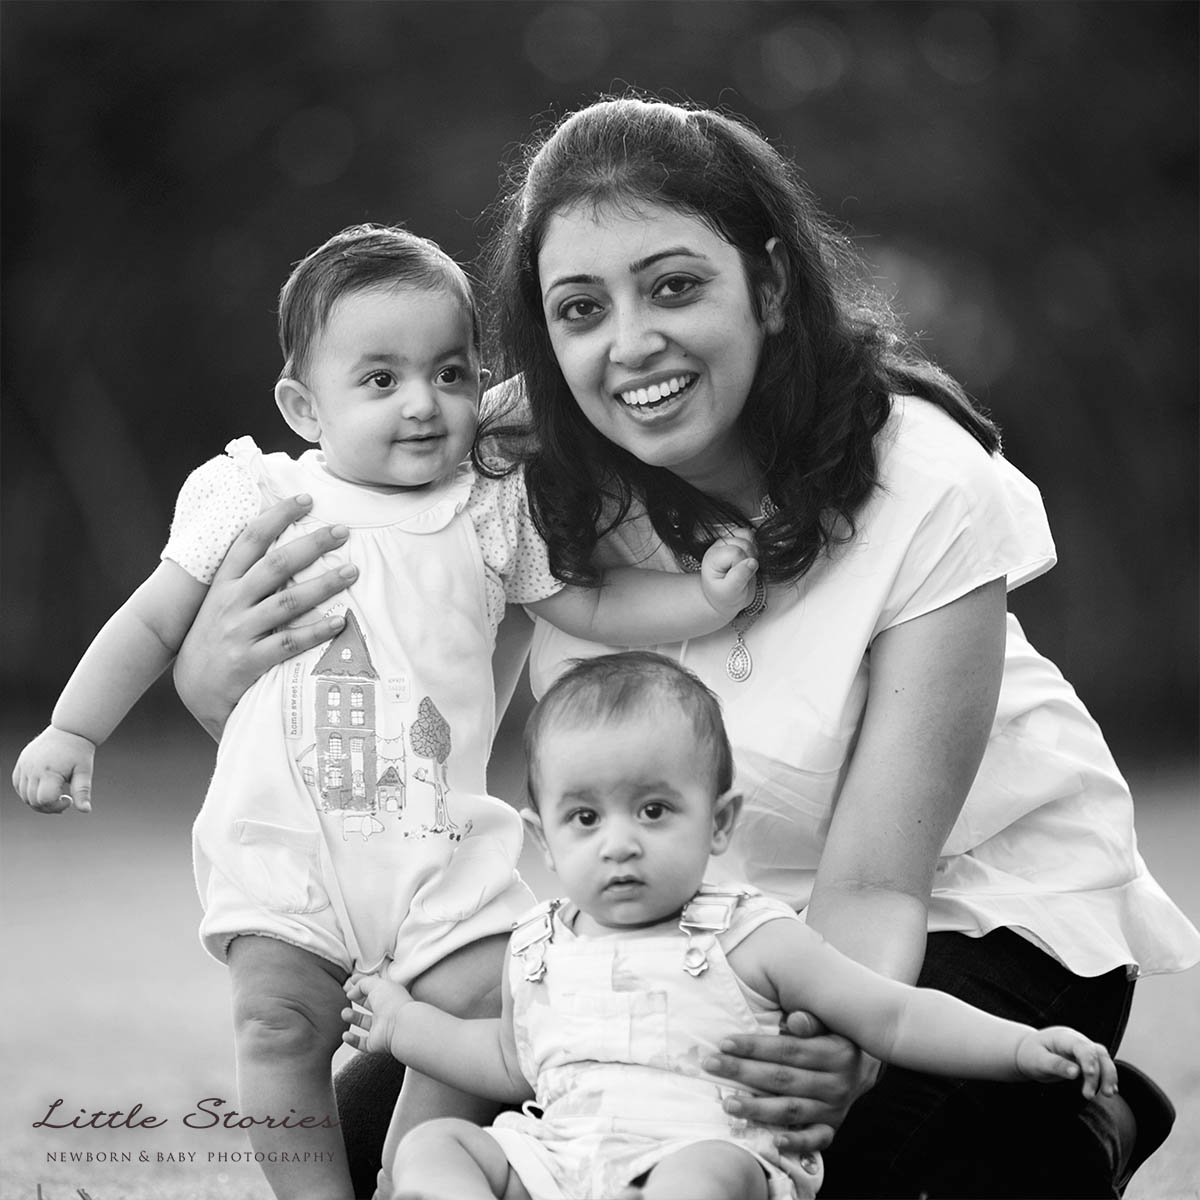 little-stories-kids-photography-happy-stories-meenakshi